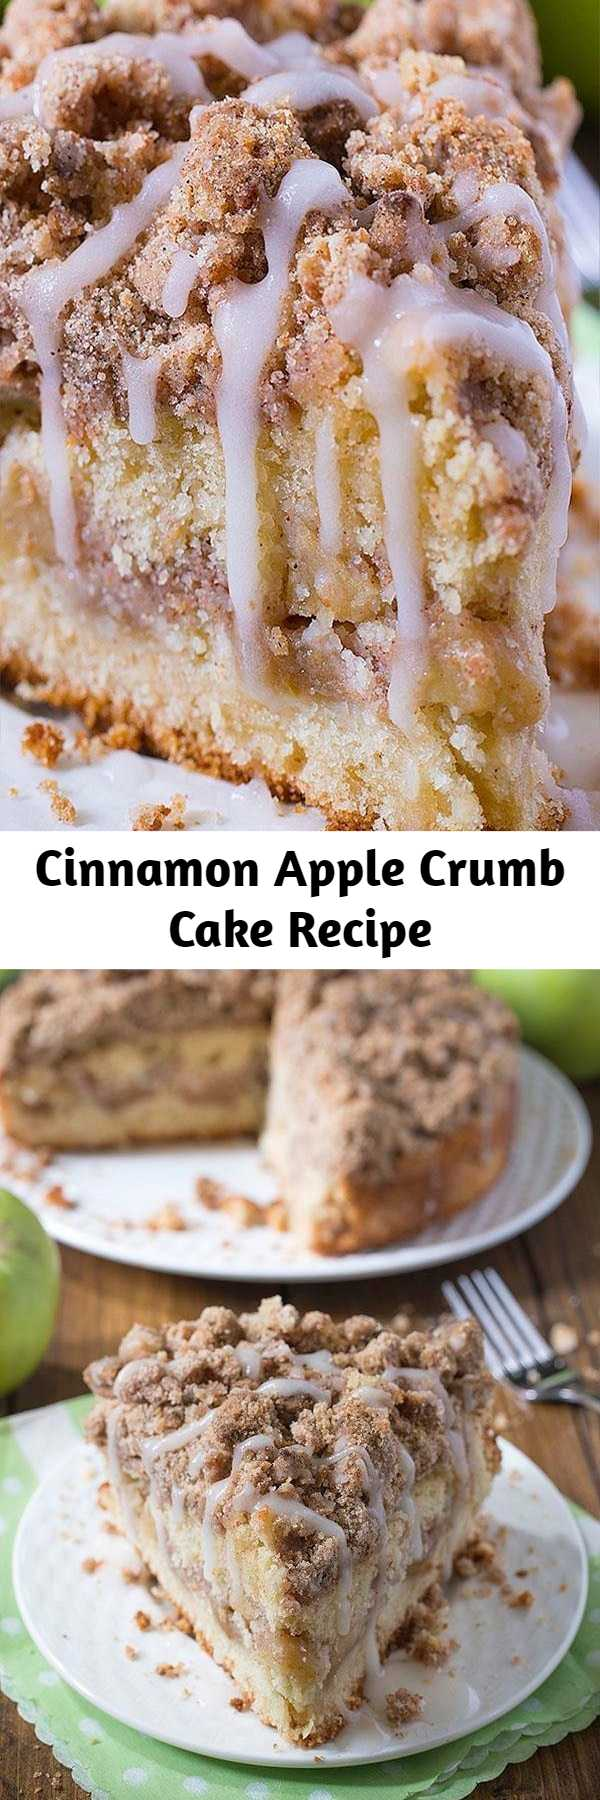 Cinnamon Apple Crumb Cake Recipe - Are you ready for fall baking? Cinnamon Apple Crumb Cake is the perfect dessert for crisp weather coming up.